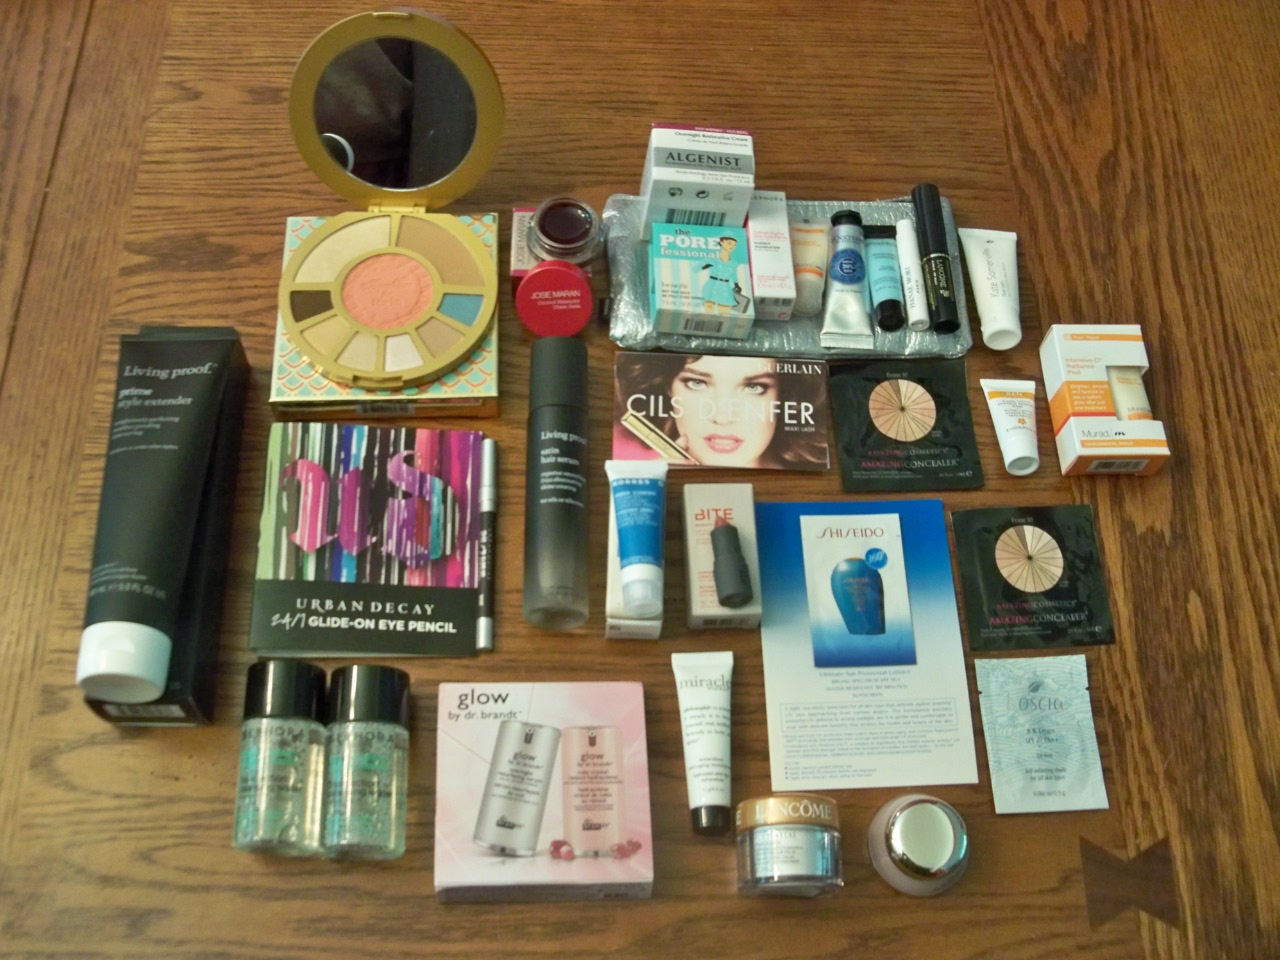 sephora sample haul.JPG